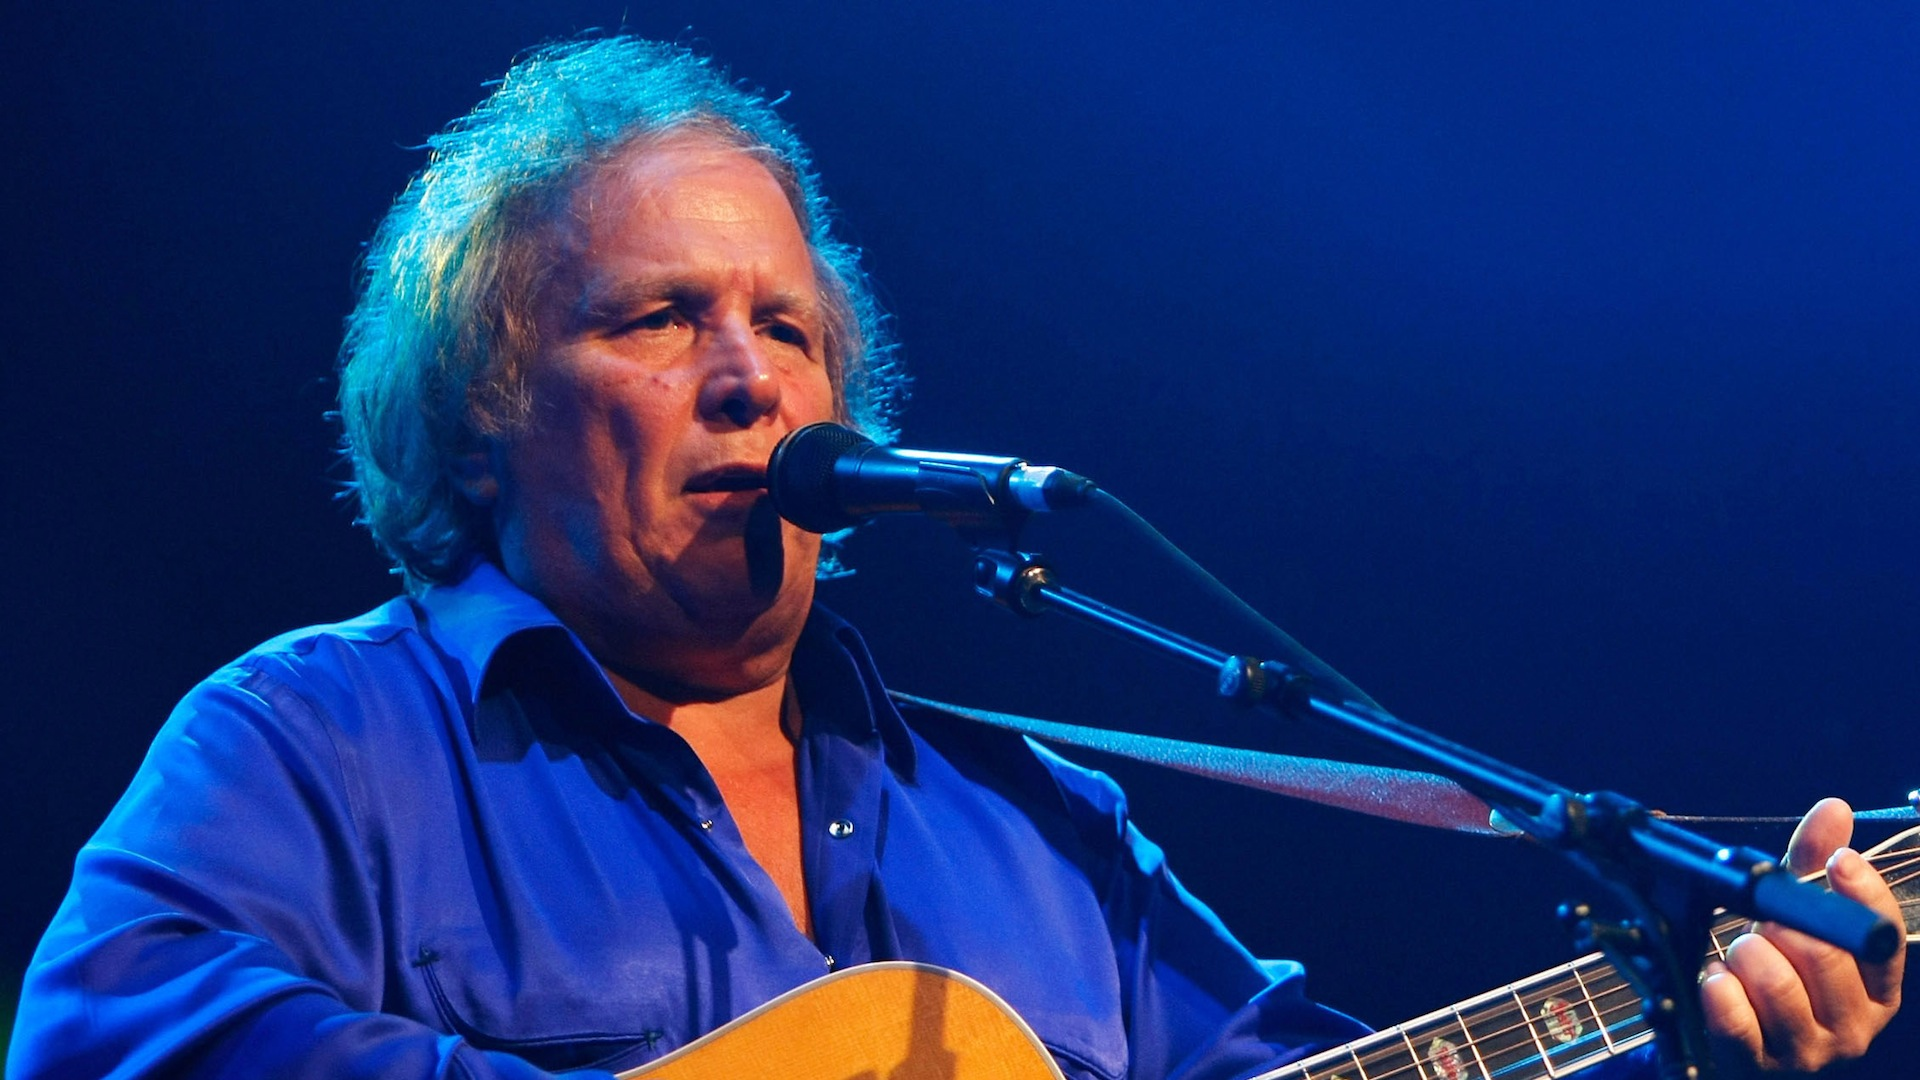 Don mclean now